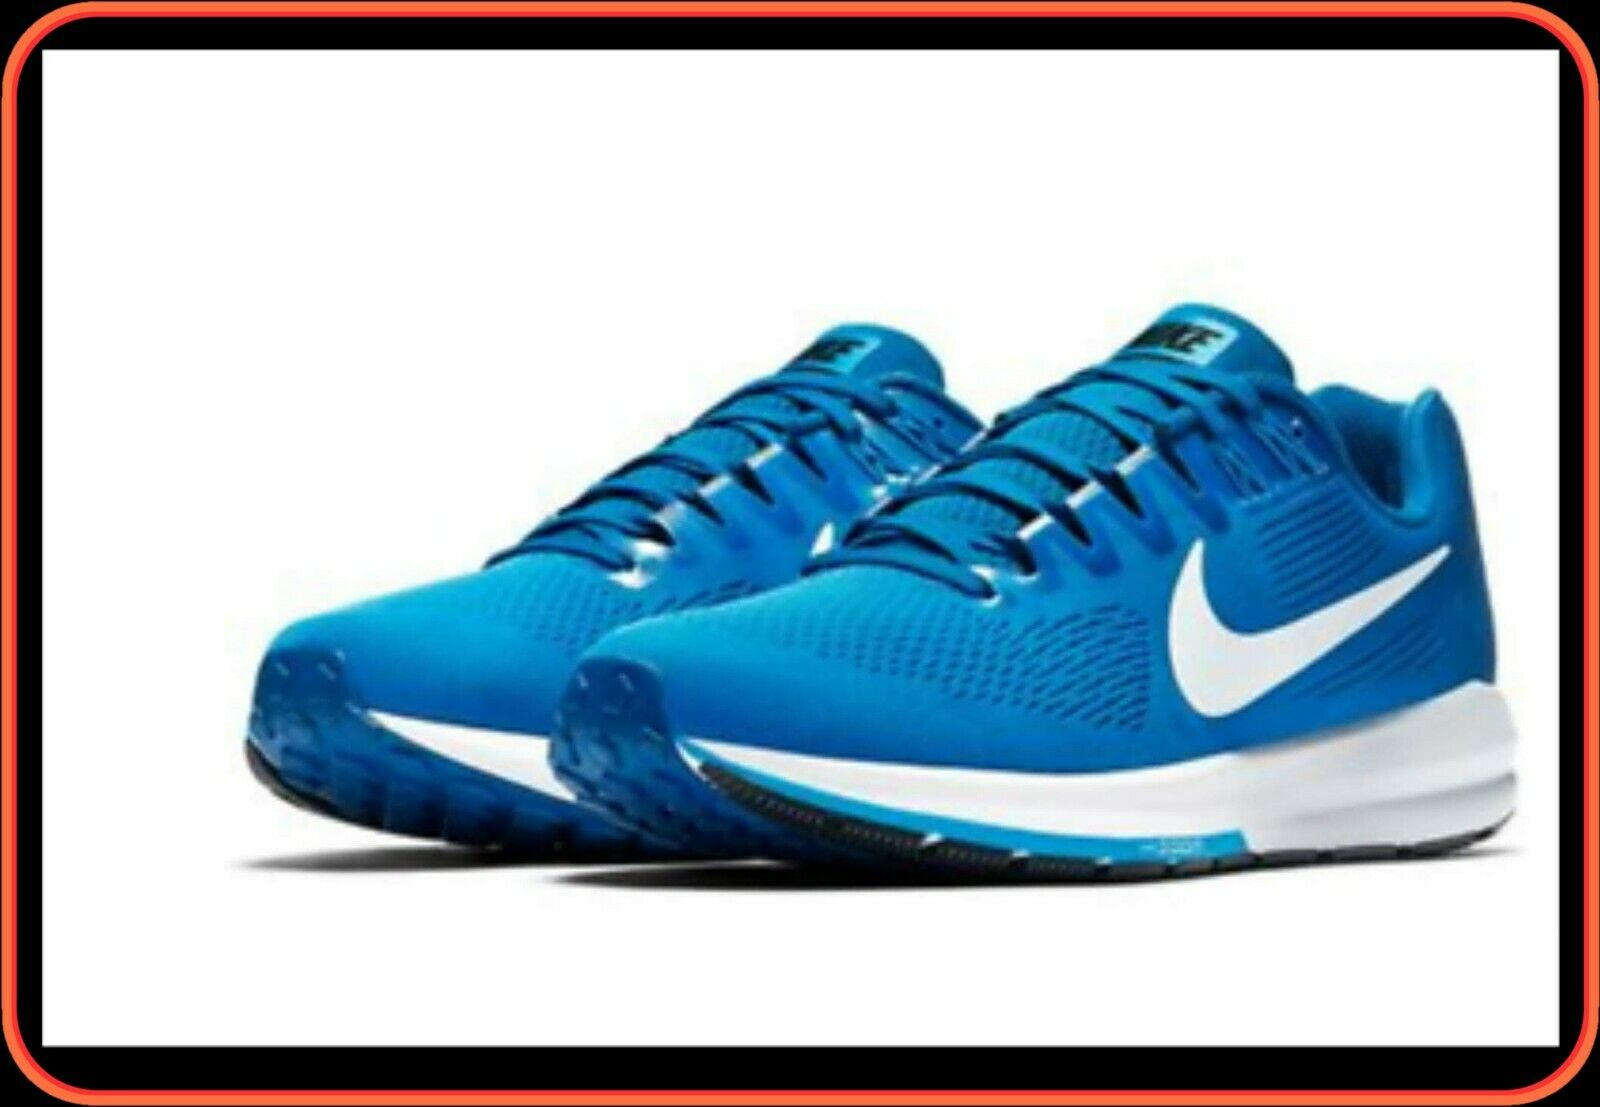 Nike Air Zoom Structure 21 Men's Running shoes - 904695 403 BNIB Size 8.5